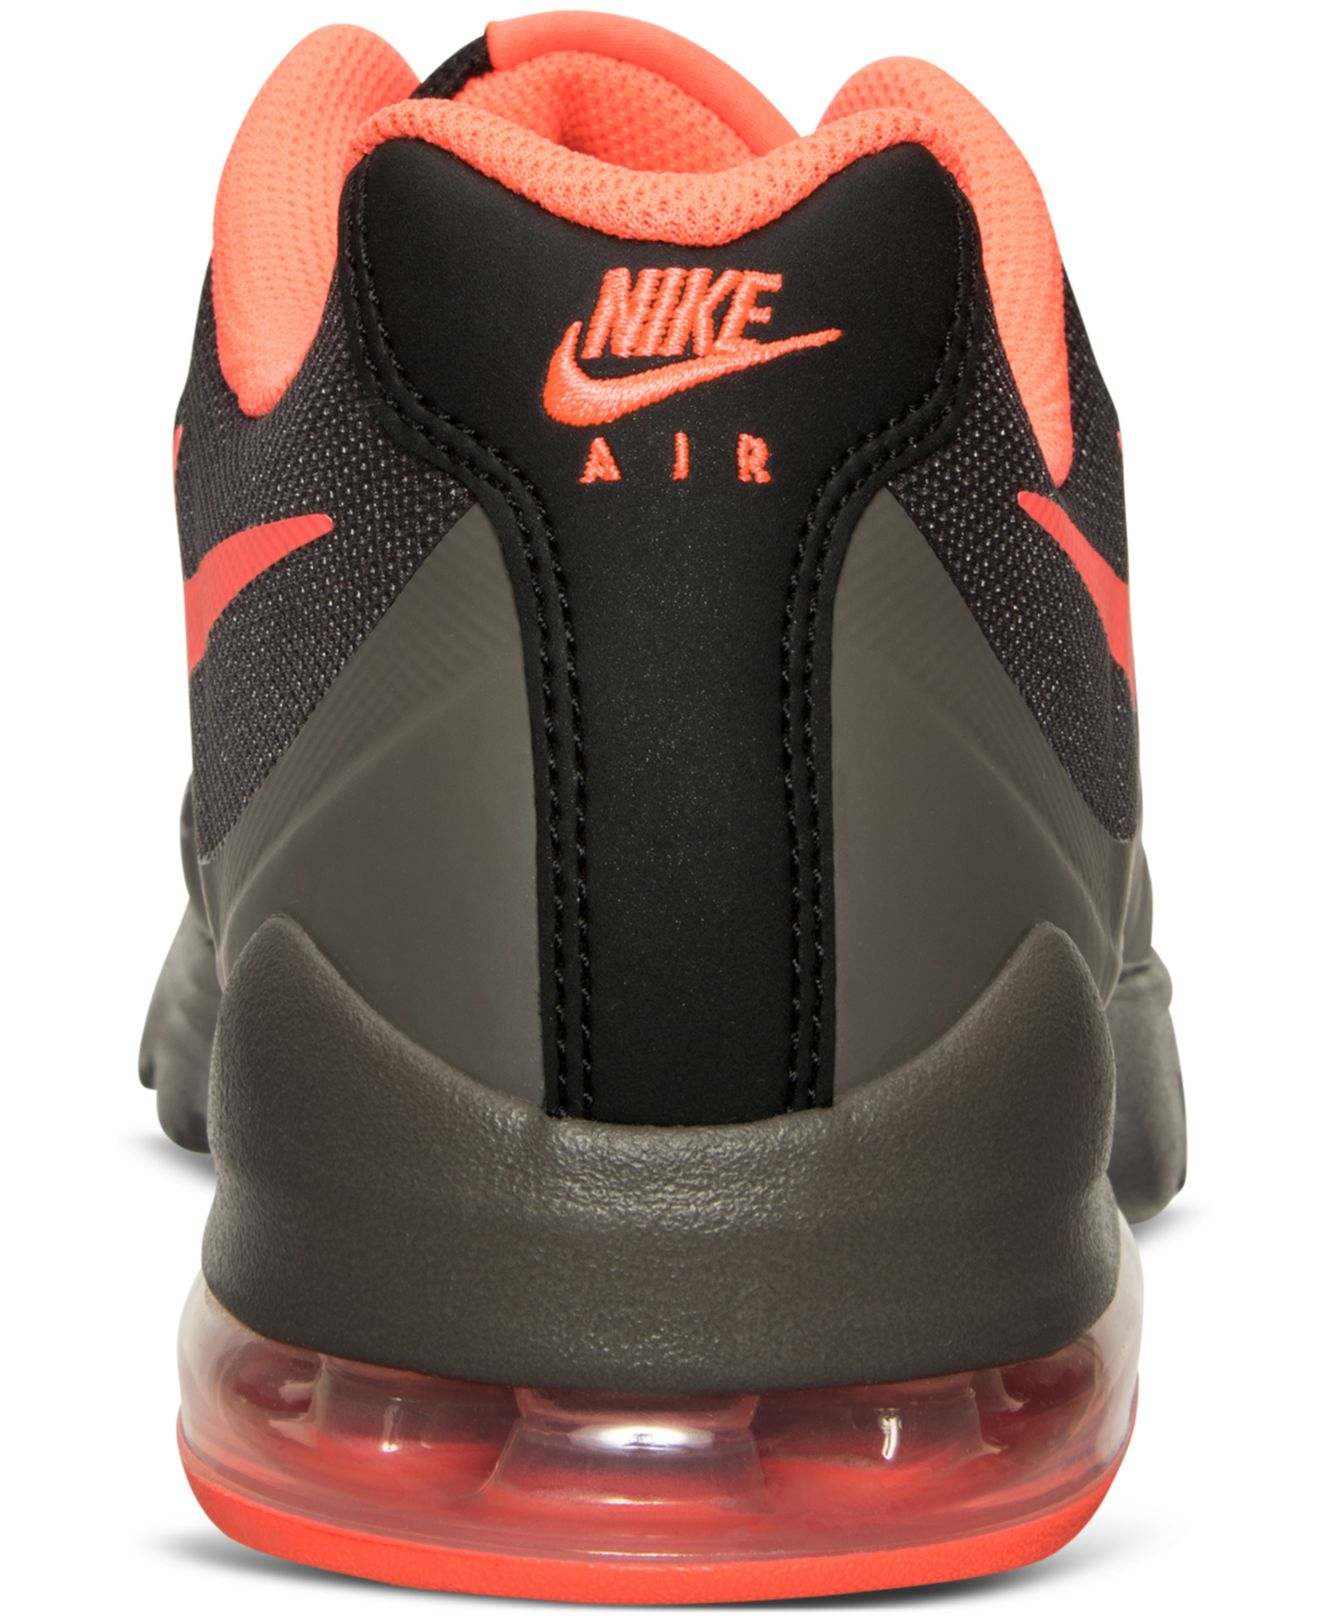 watch 05c1c 5c2d2 ... discount lyst nike mens air max invigor print running sneakers from  finish line in black for